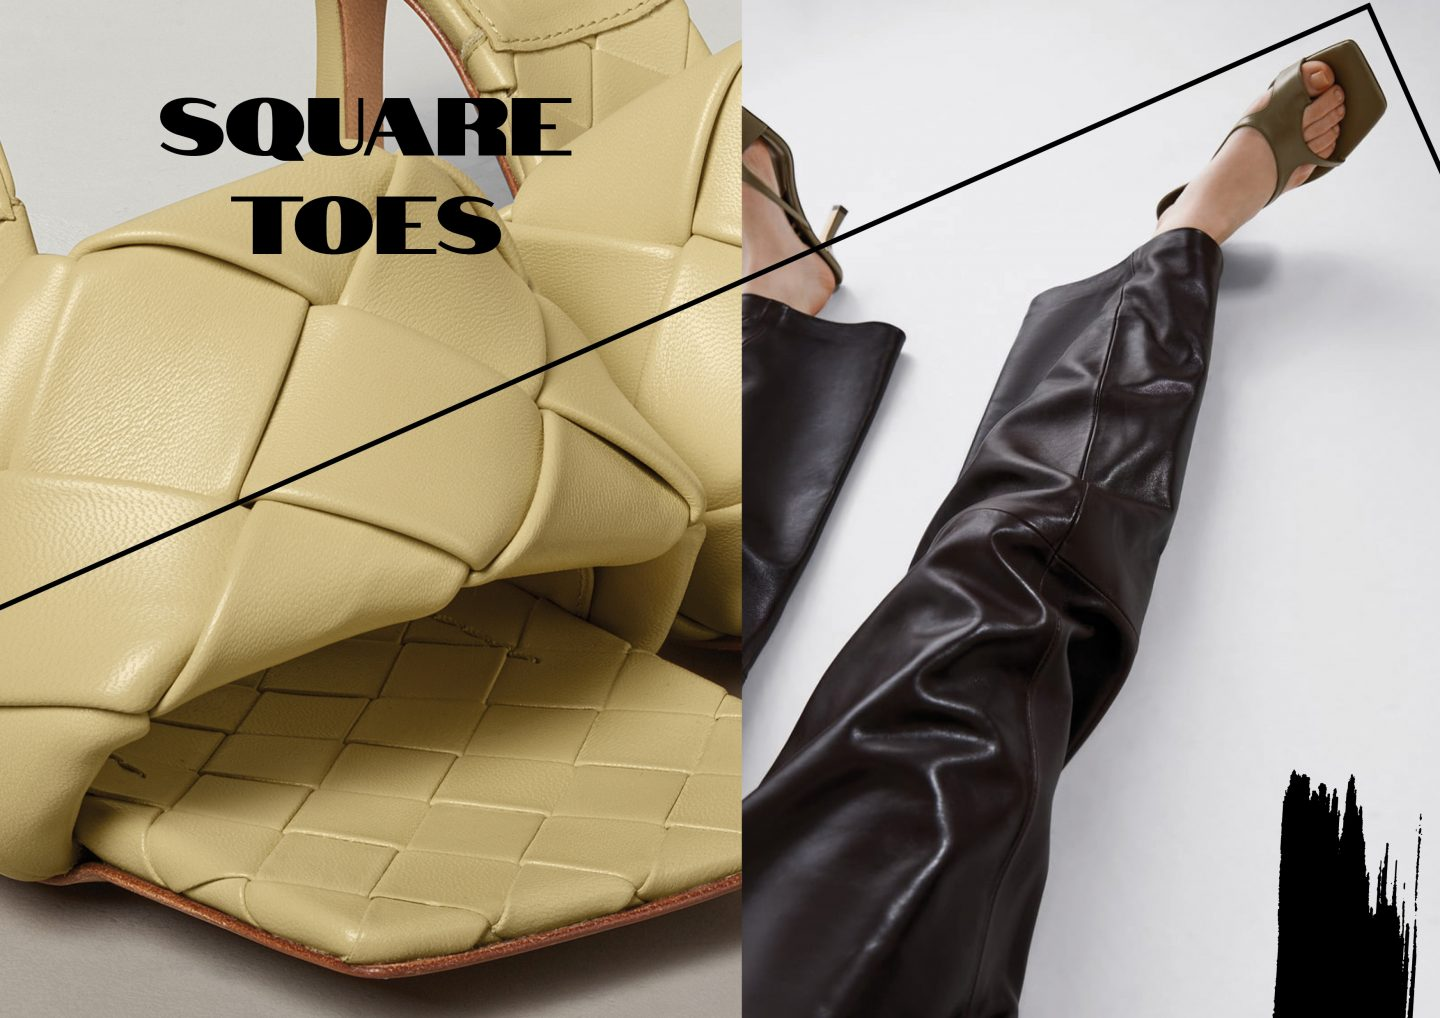 schuhtrend-square-toes